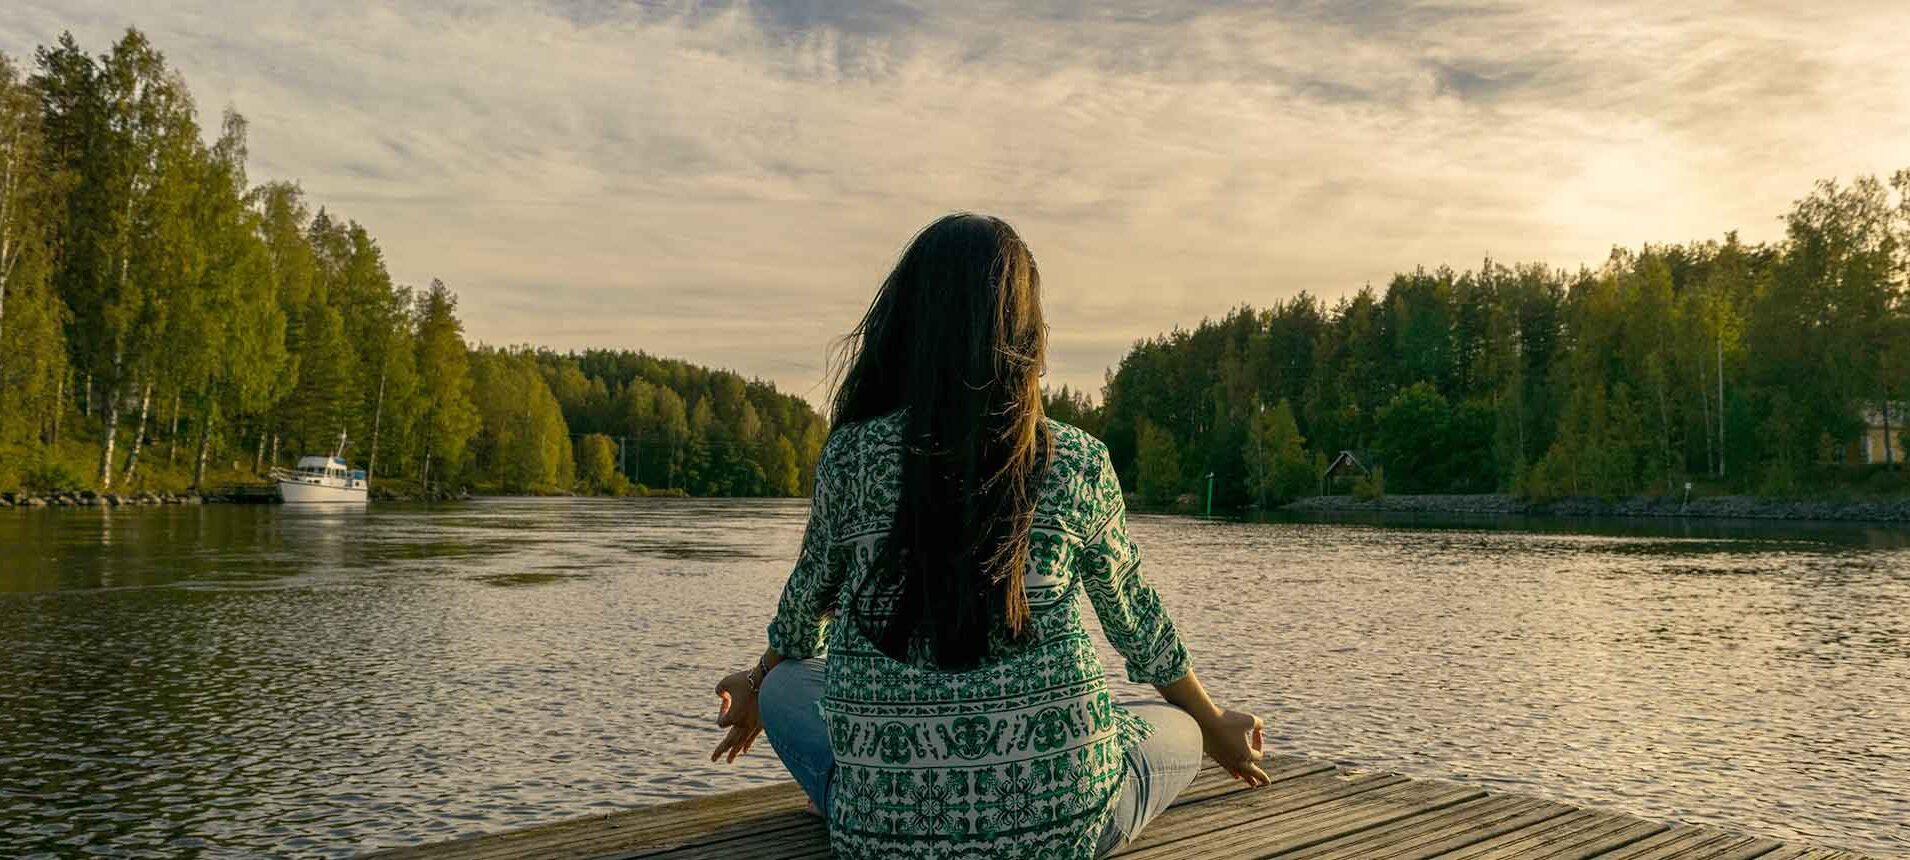 A woman sitting on a lake dock practicing meditation